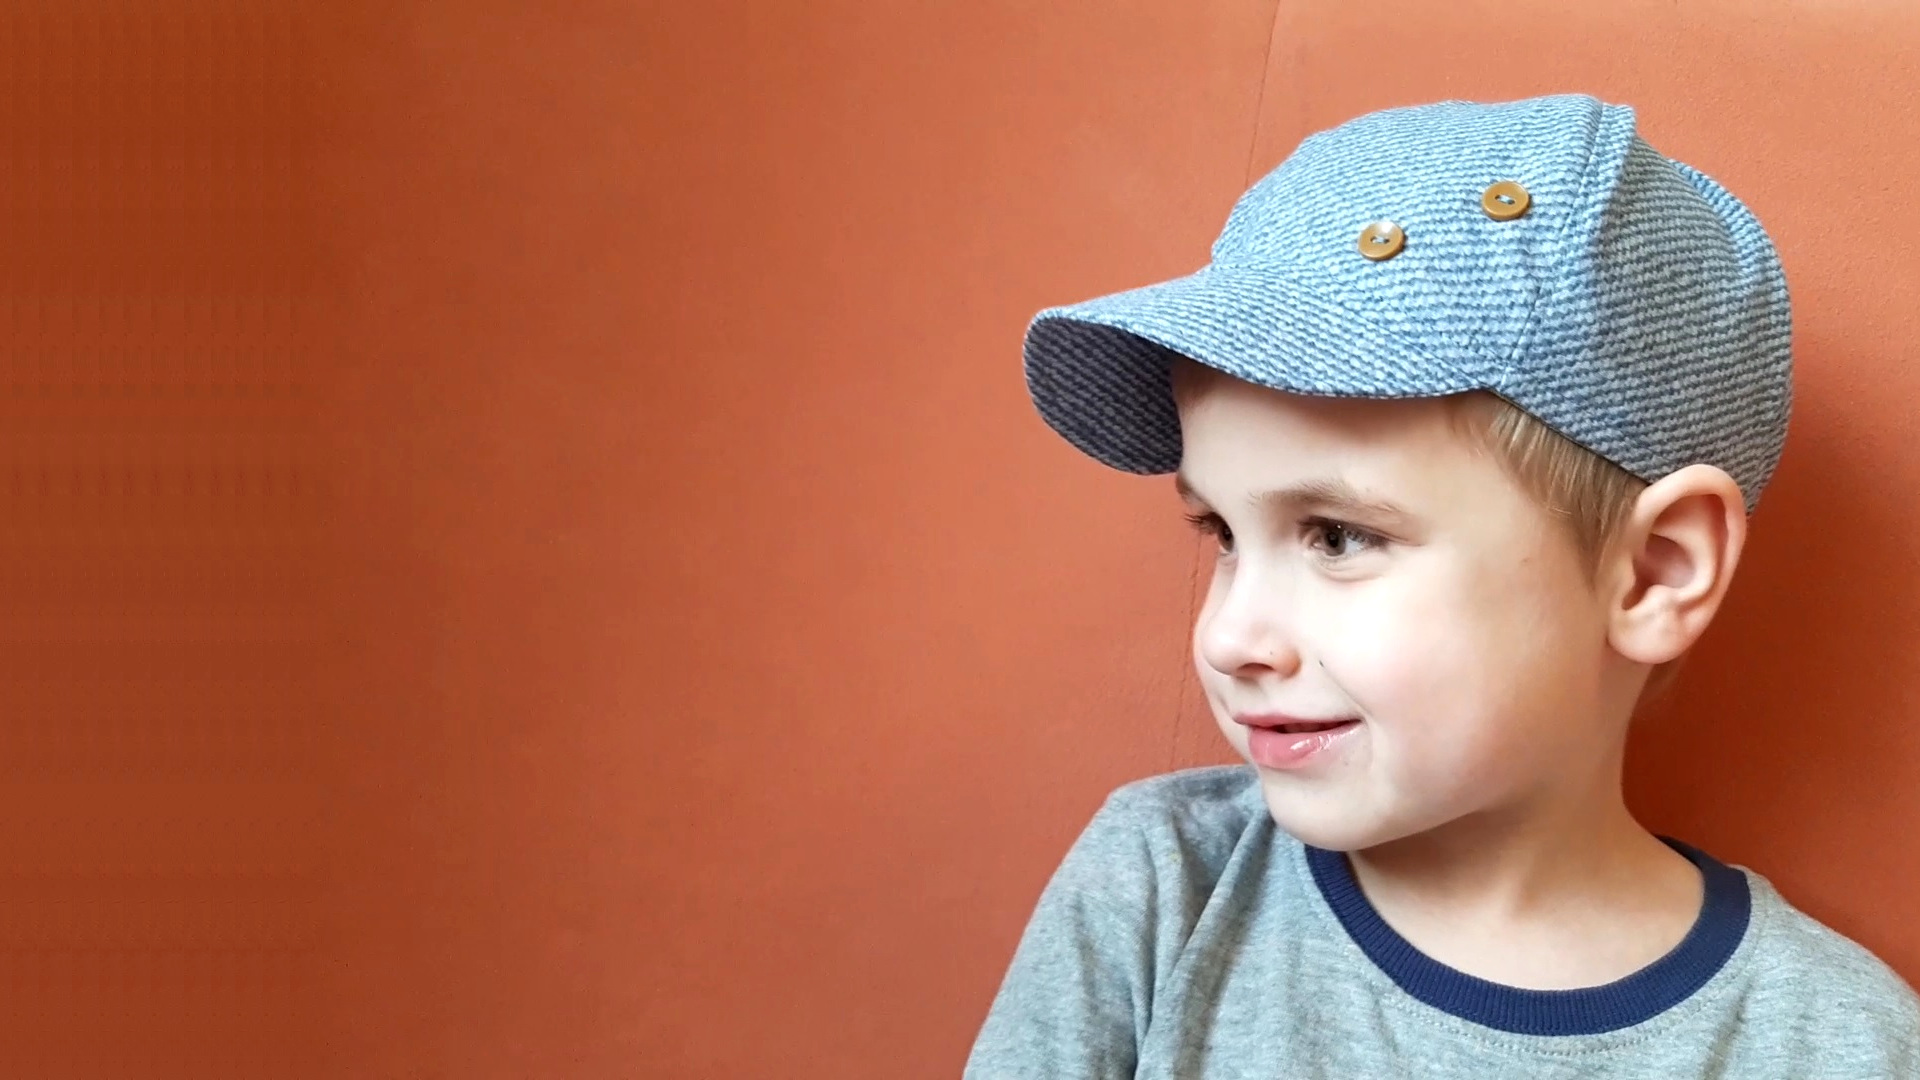 How to sew a children's cap - cut and instructions for sewing a cap